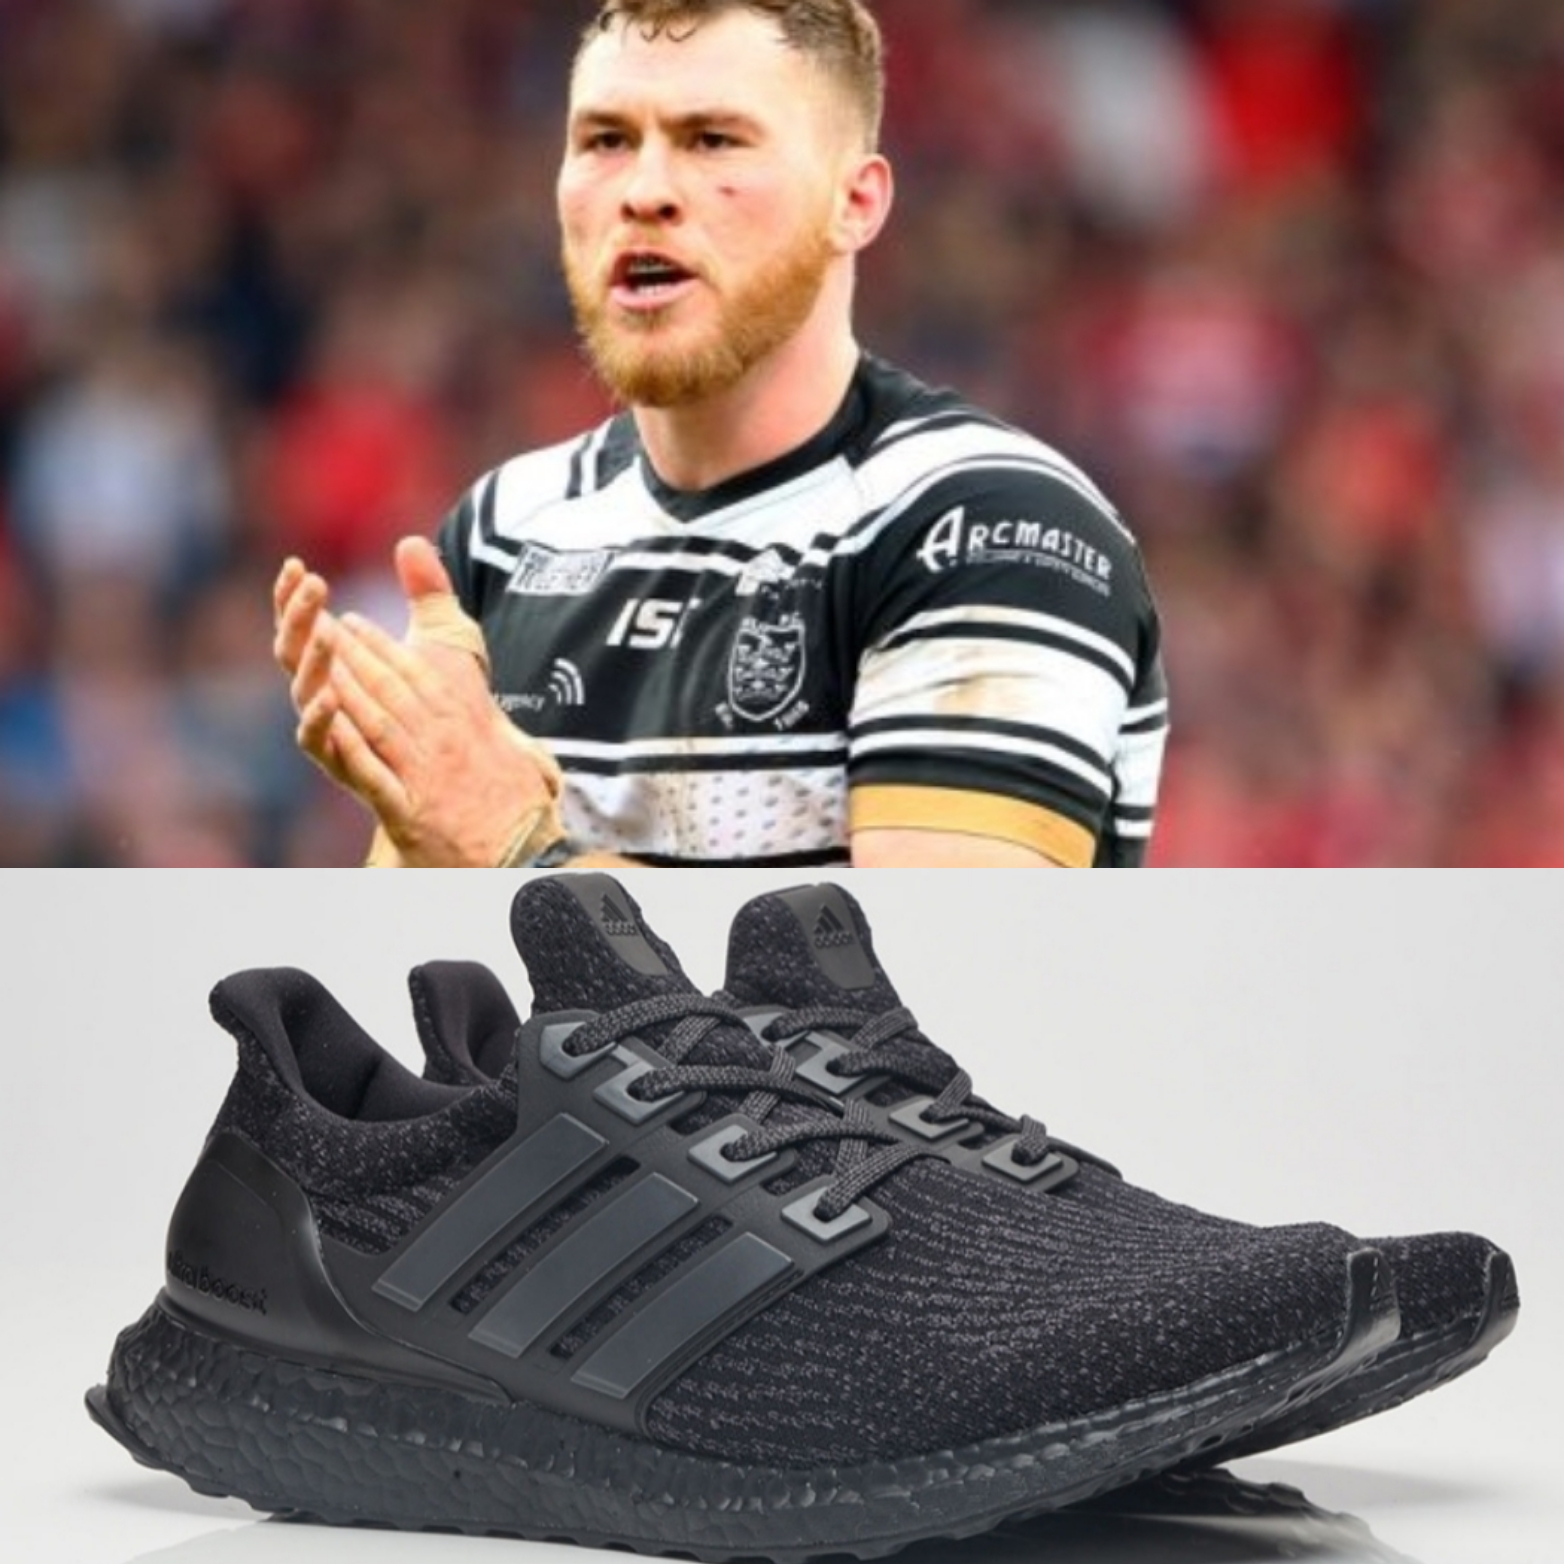 Fans favourite Scott Taylor is aslo heavily involved in Grassroots Rugby! What do you think of his Black Adidas Boosts?